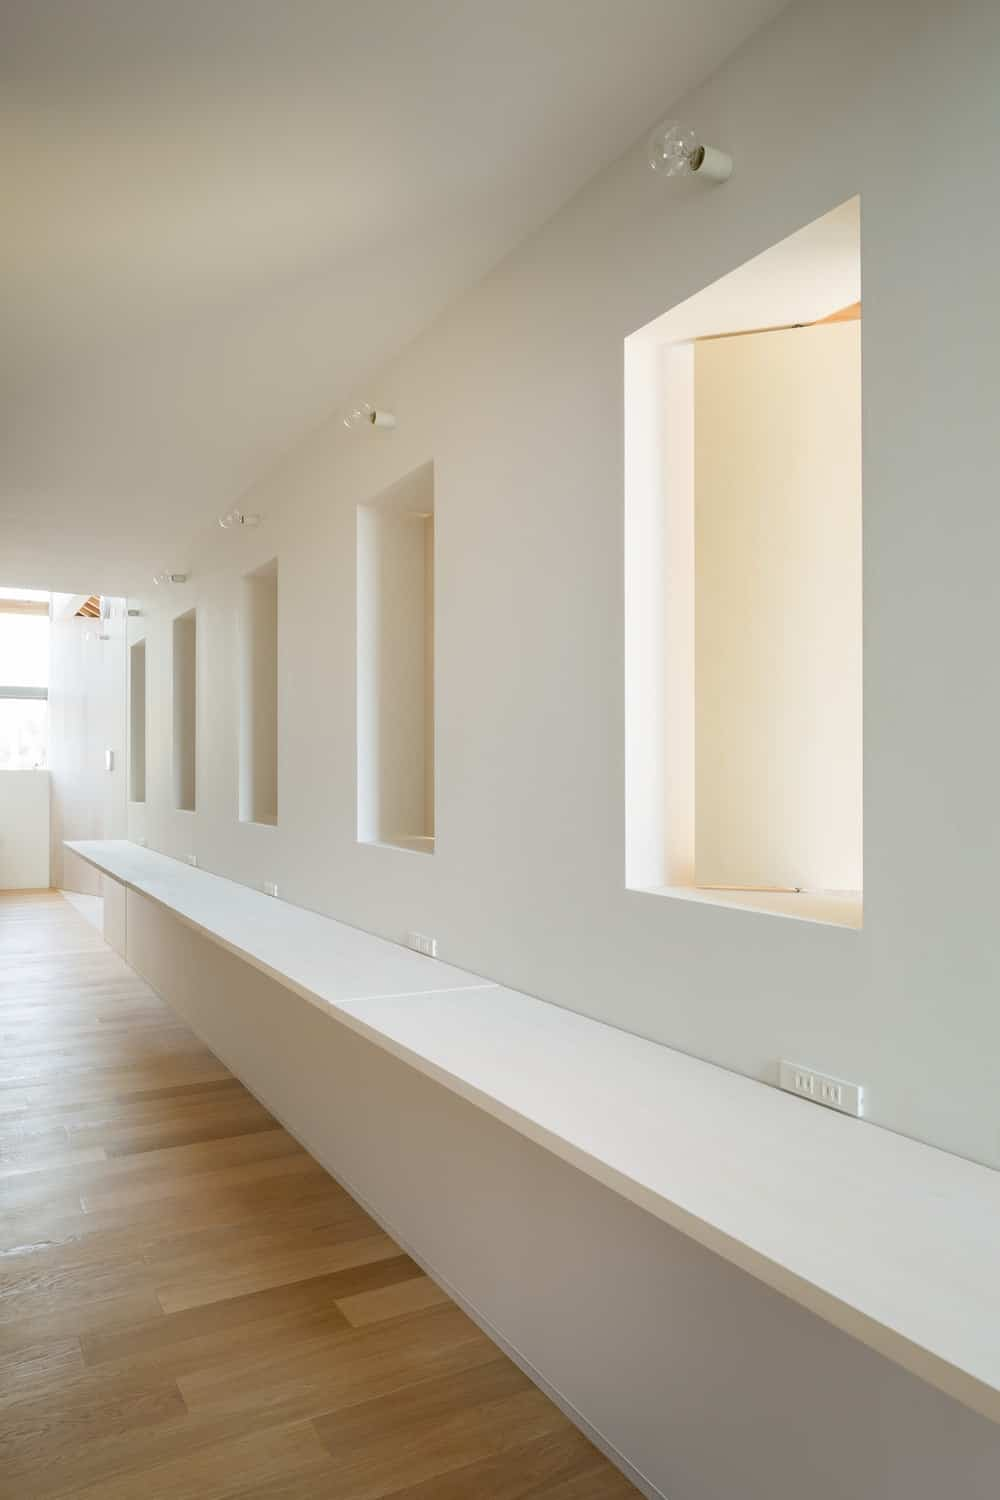 This side of the house has a long floating shelf belong a row of windows that can fit mirrors for a spacious salon. This area has a consistent beige tone illuminated by natural lights.